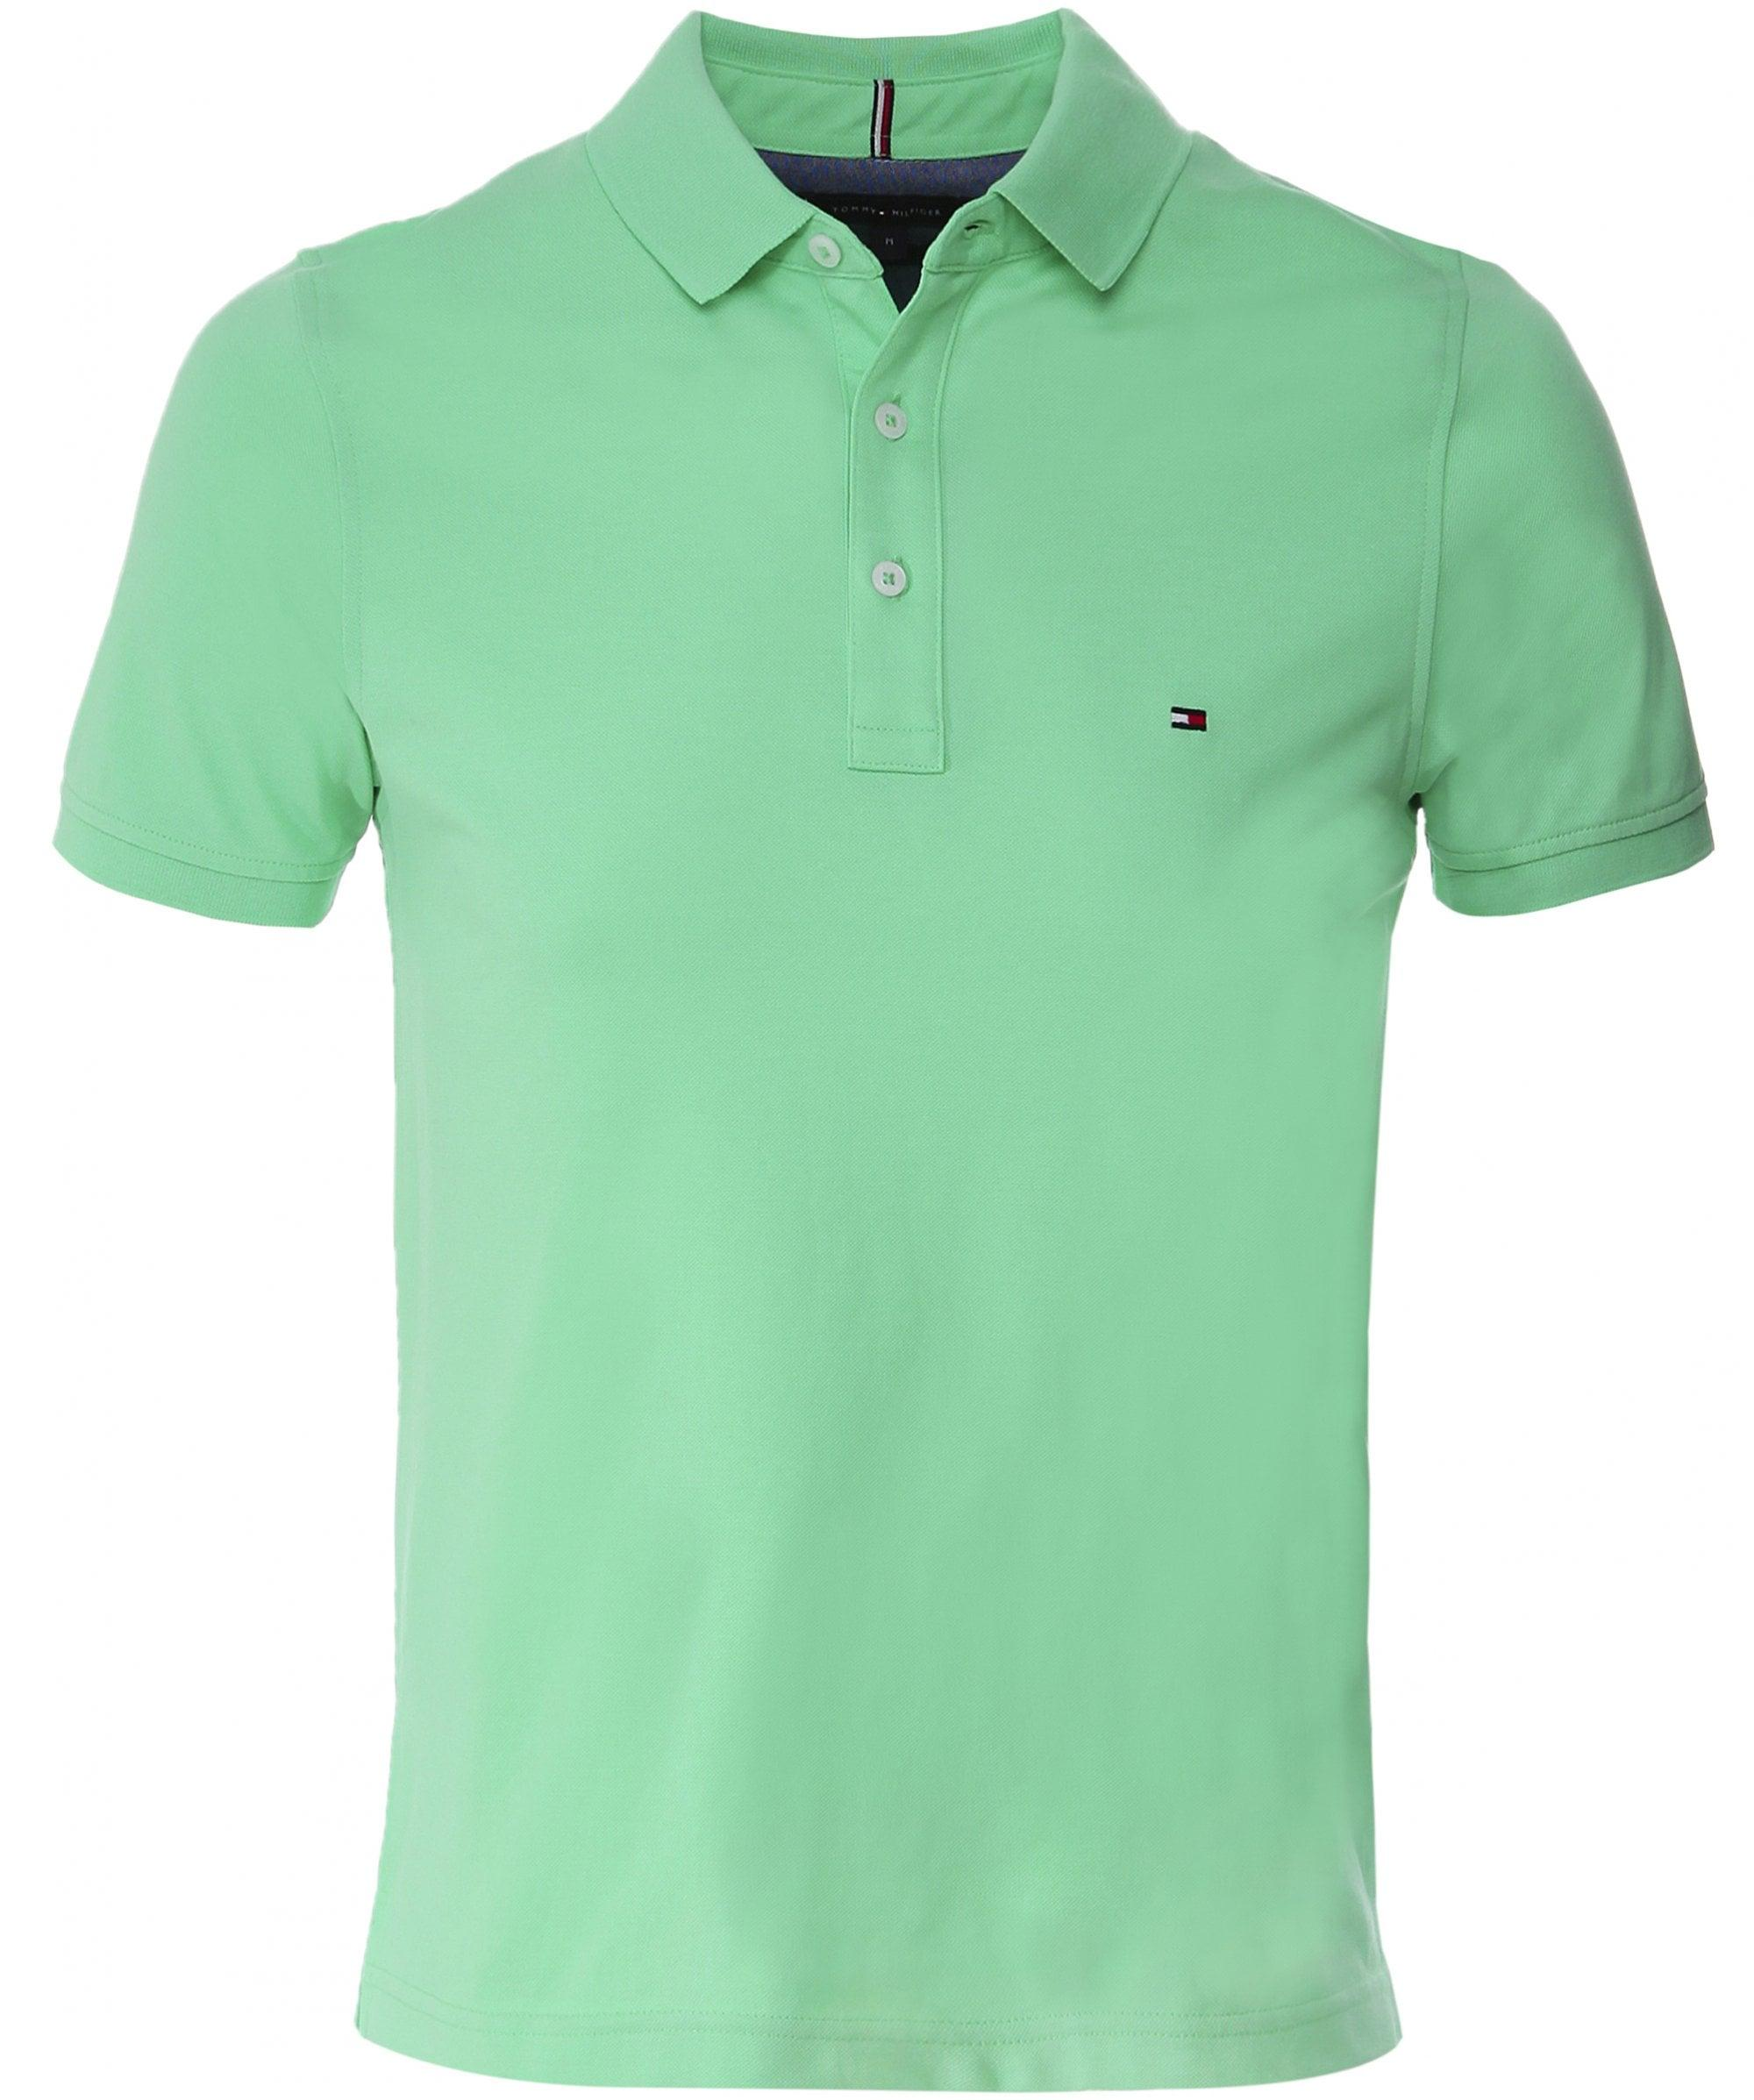 4bfdb4cfc42 Tommy Hilfiger Slim Fit Pique Polo Shirt in Green for Men - Lyst